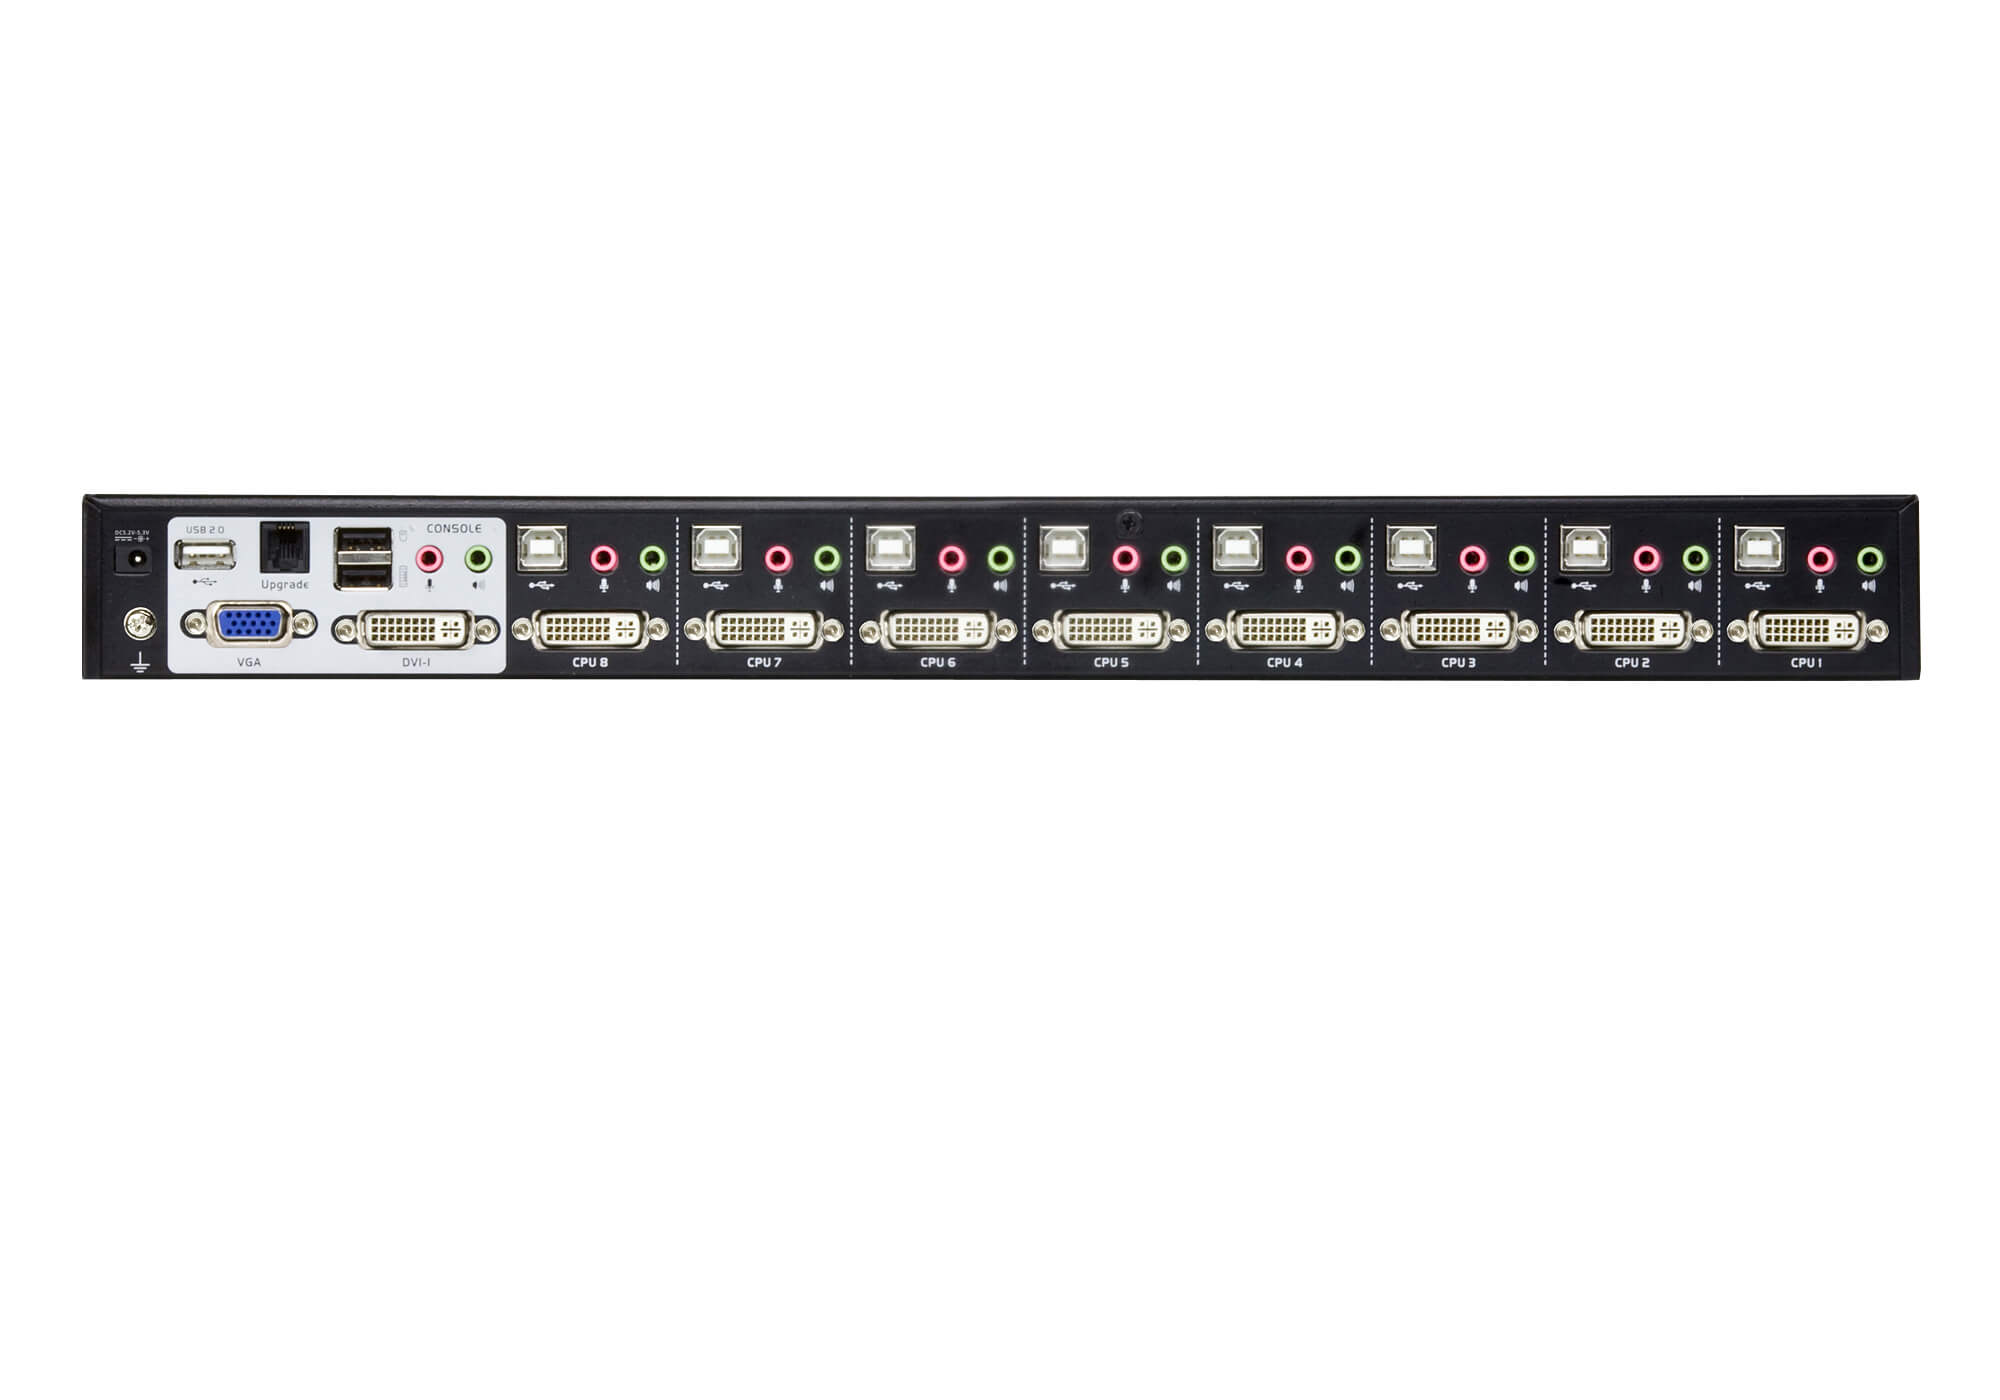 8 Port Usb Dvi Dual Link Audio Kvm Switch Cs1788 Aten Rack Power A Distant Hub Using Only The Cable 2